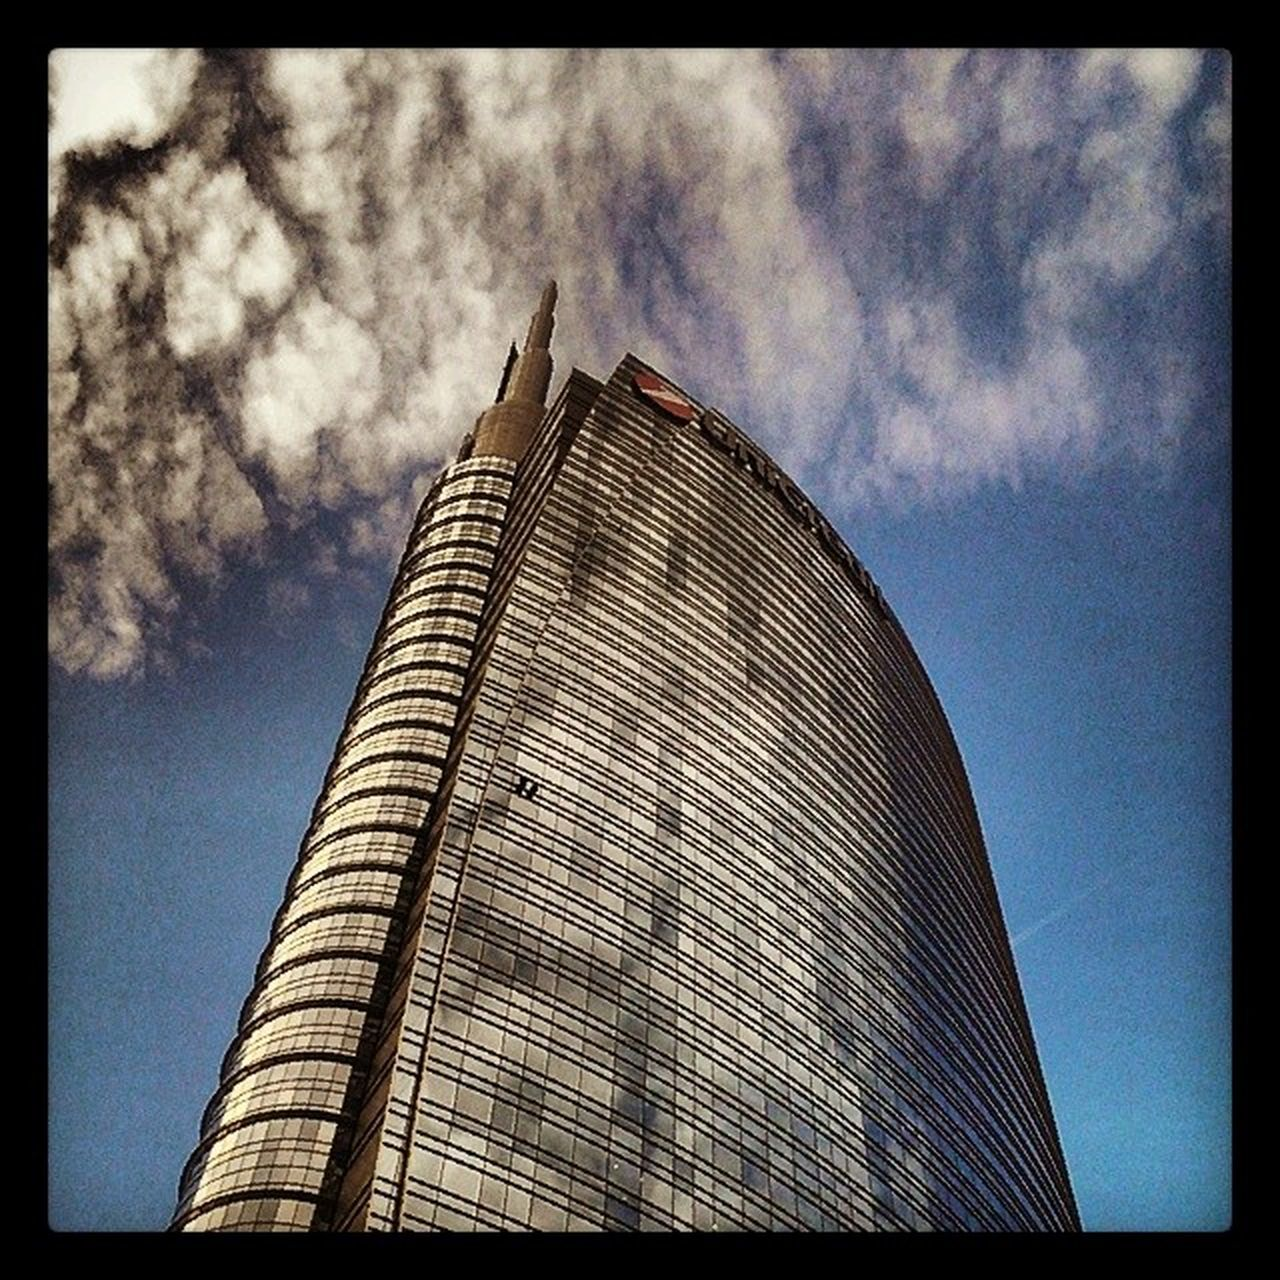 architecture, built structure, low angle view, sky, building exterior, modern, skyscraper, day, cloud - sky, no people, outdoors, travel destinations